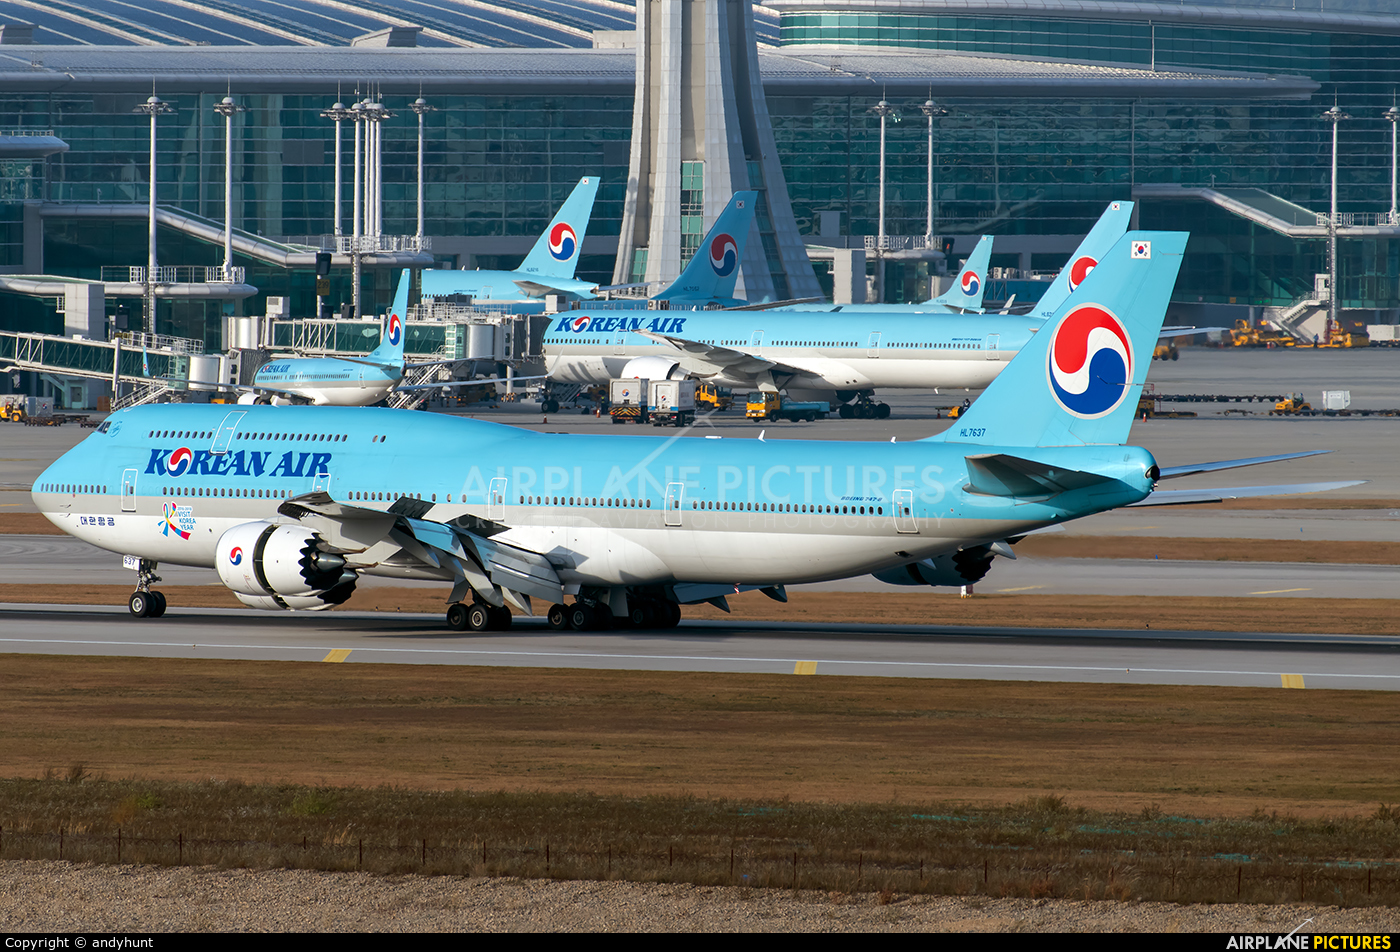 Korean Air HL7637 aircraft at Seoul - Incheon